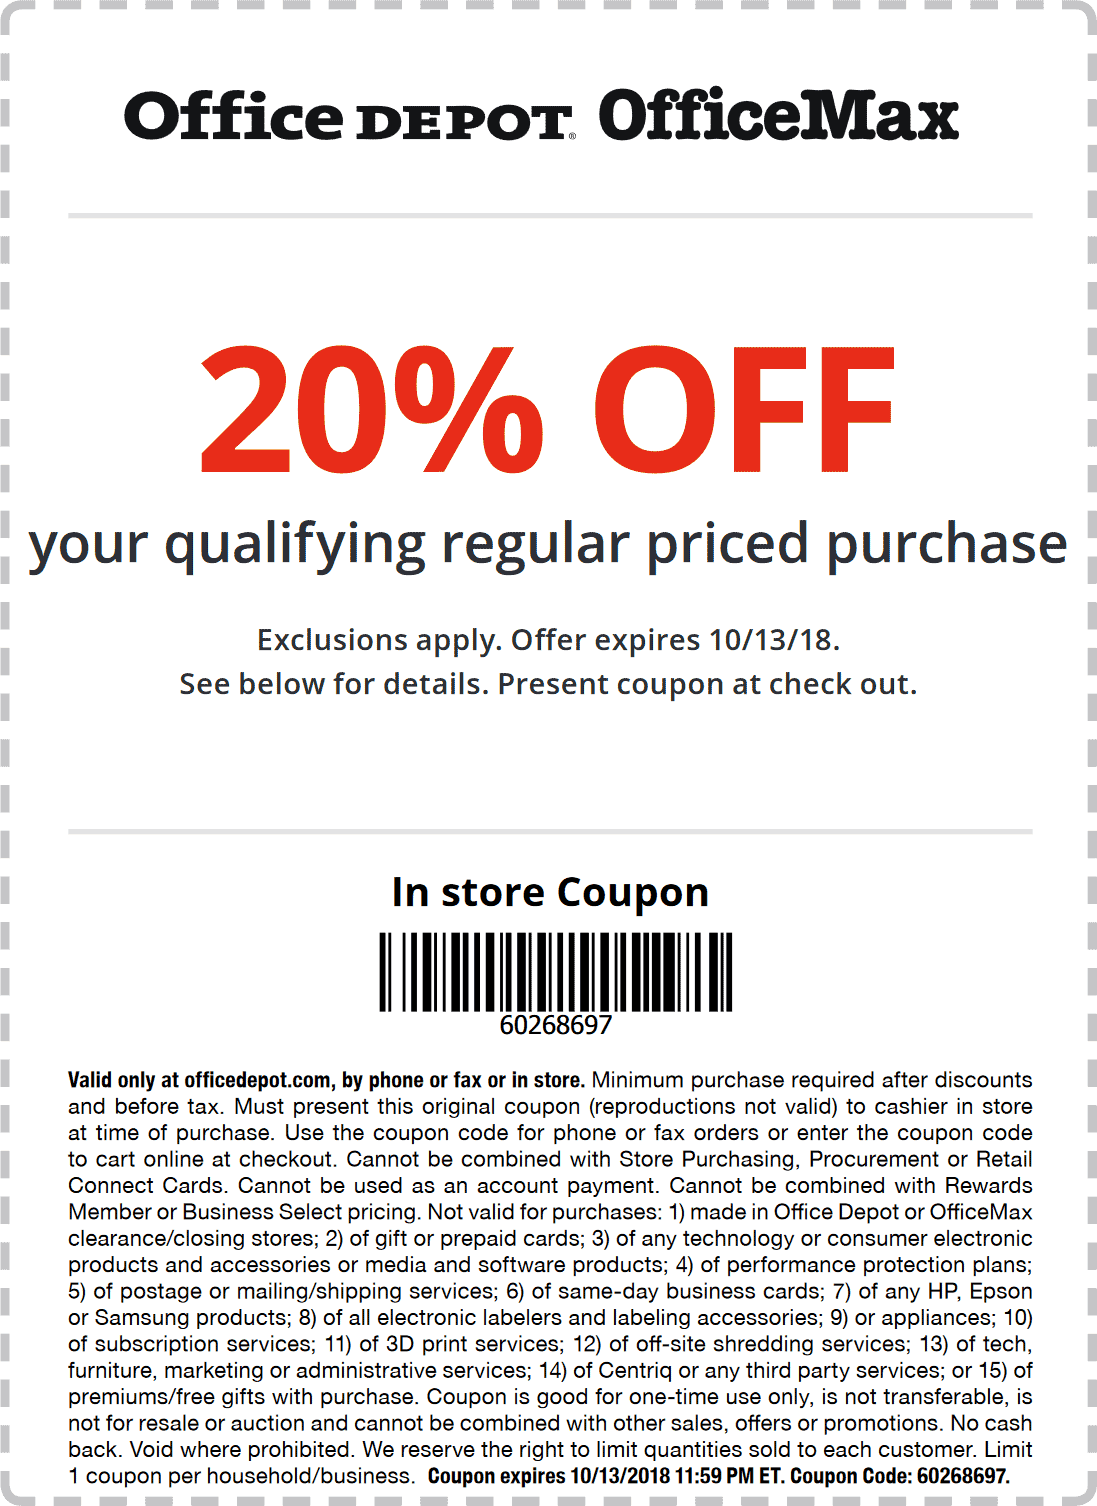 Office Depot Coupon January 2020 20% off at OfficeMax & Office Depot, or online via promo code 60268697